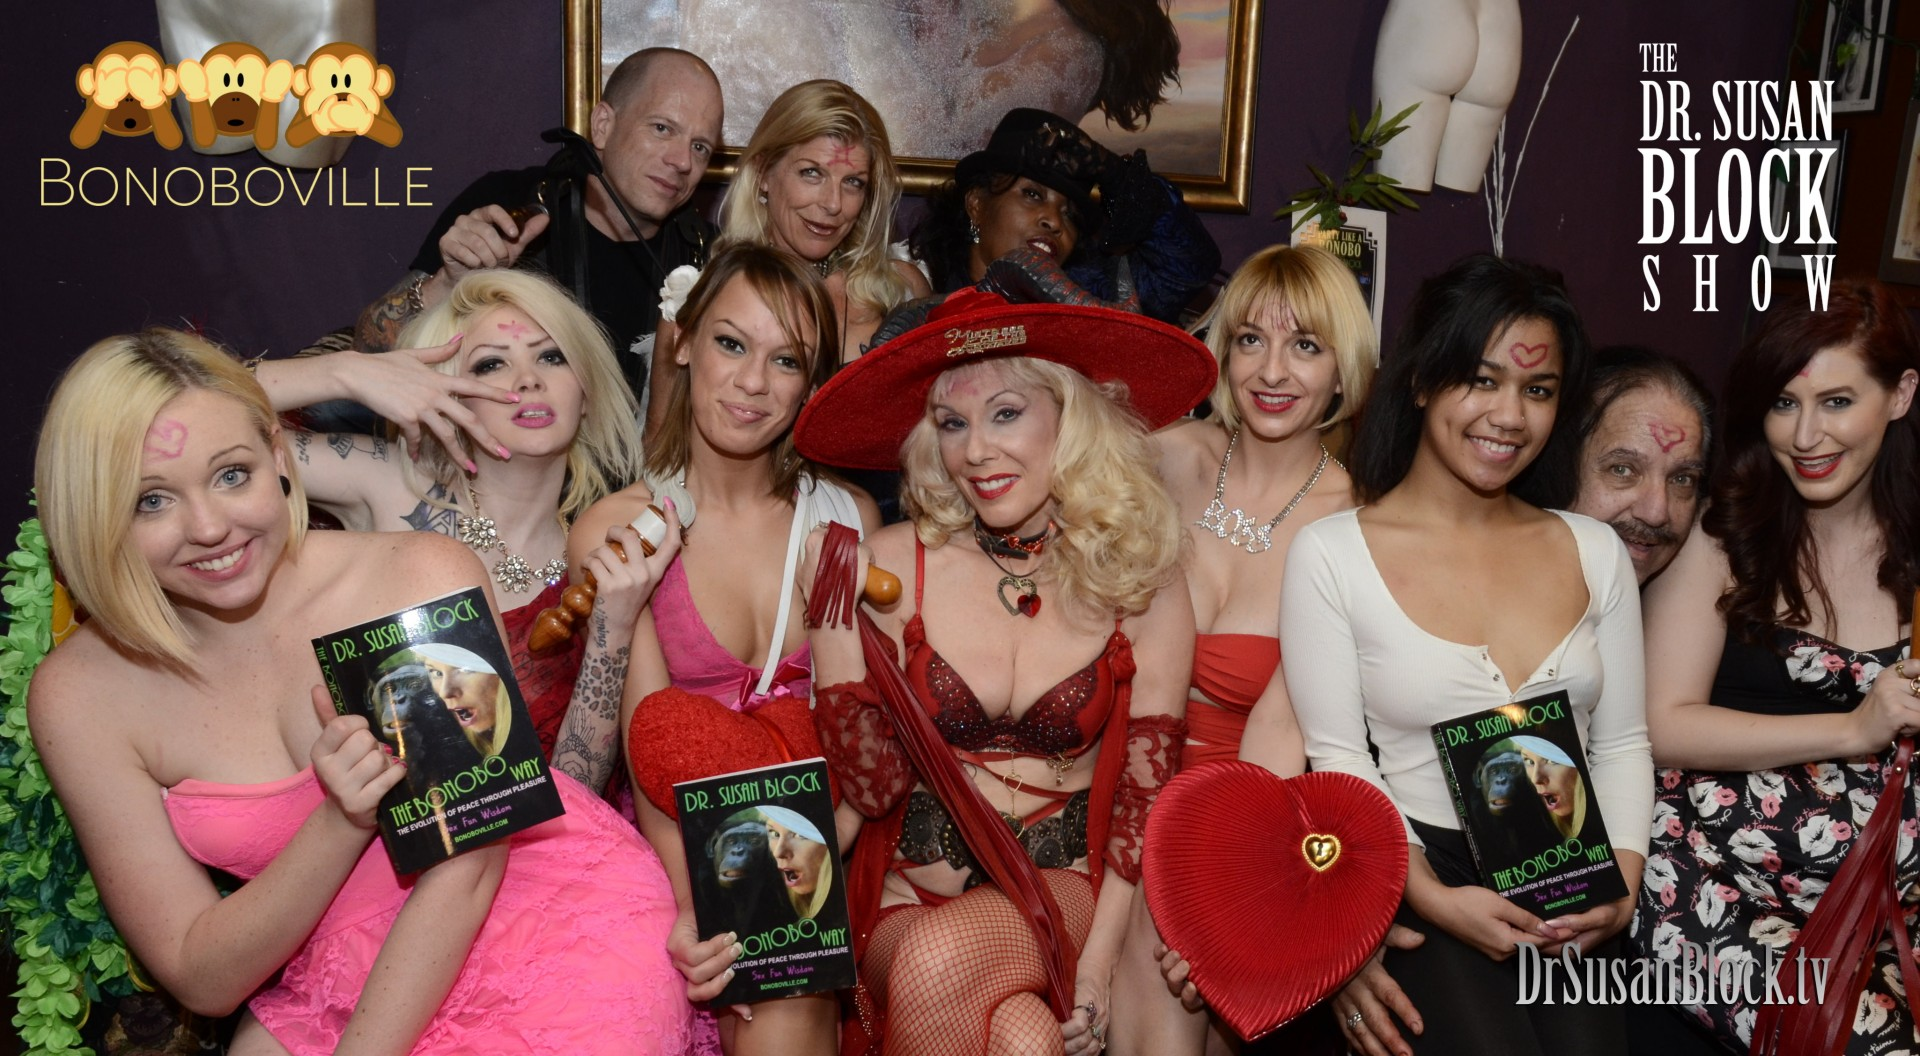 Miley May, Amor Hilton, Haley Sweet, Dr. Susan Block, Rainey Lane, Loni Legend, Ron Jeremy, Charli Piper. Row 2: Jux Lii of Jux Leather, Chelsea Raw, Pussy Peddla. Photo: Irwin J